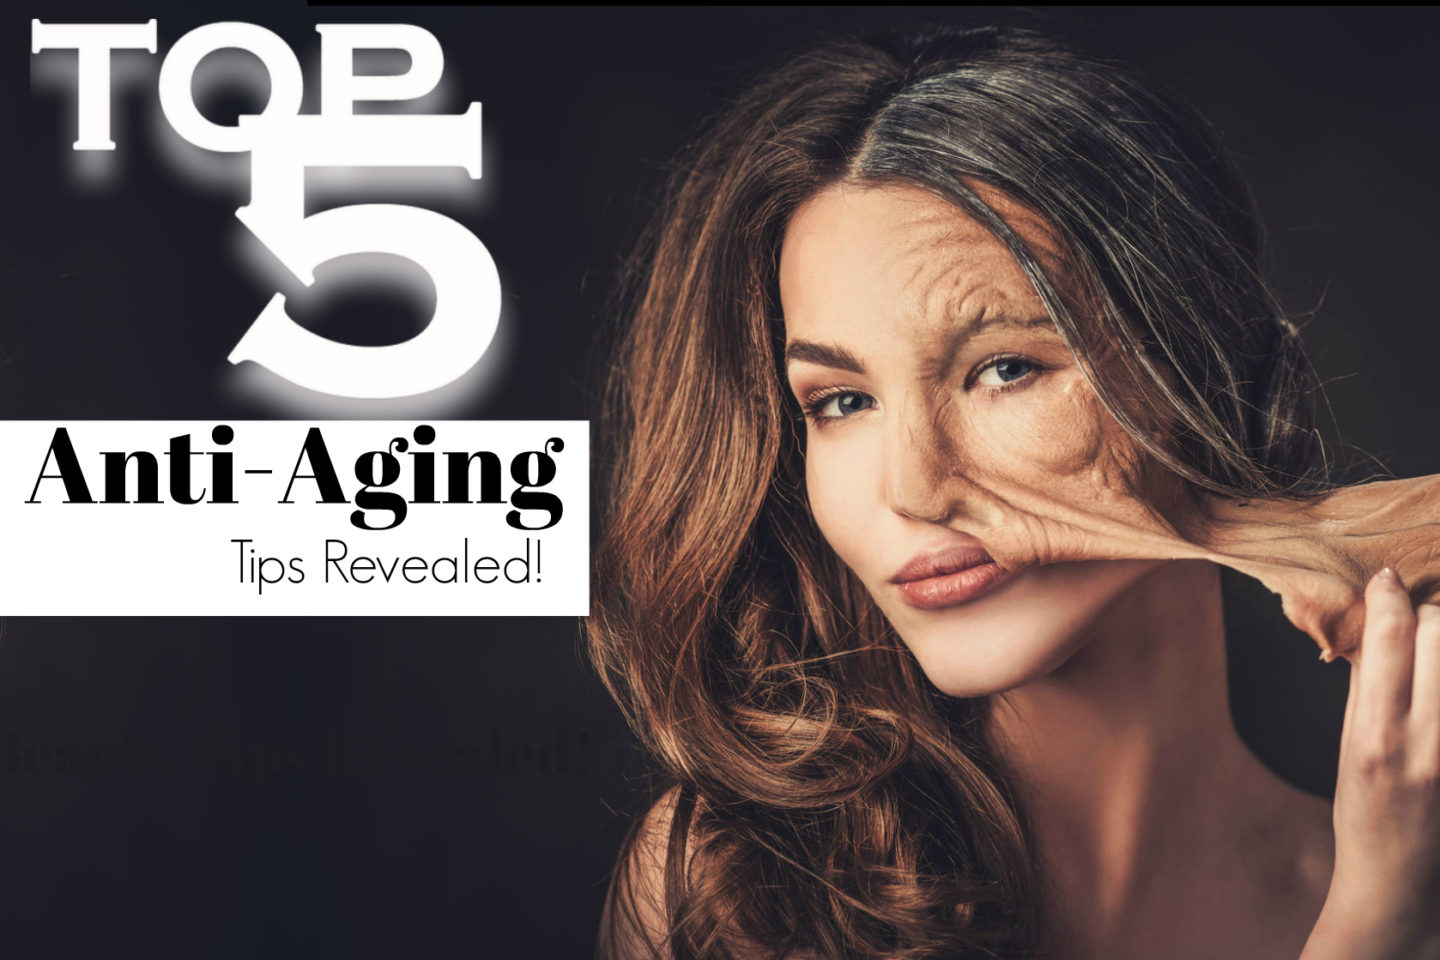 Top 5 Anti-Aging Secrets Revealed By Beauty After Forty